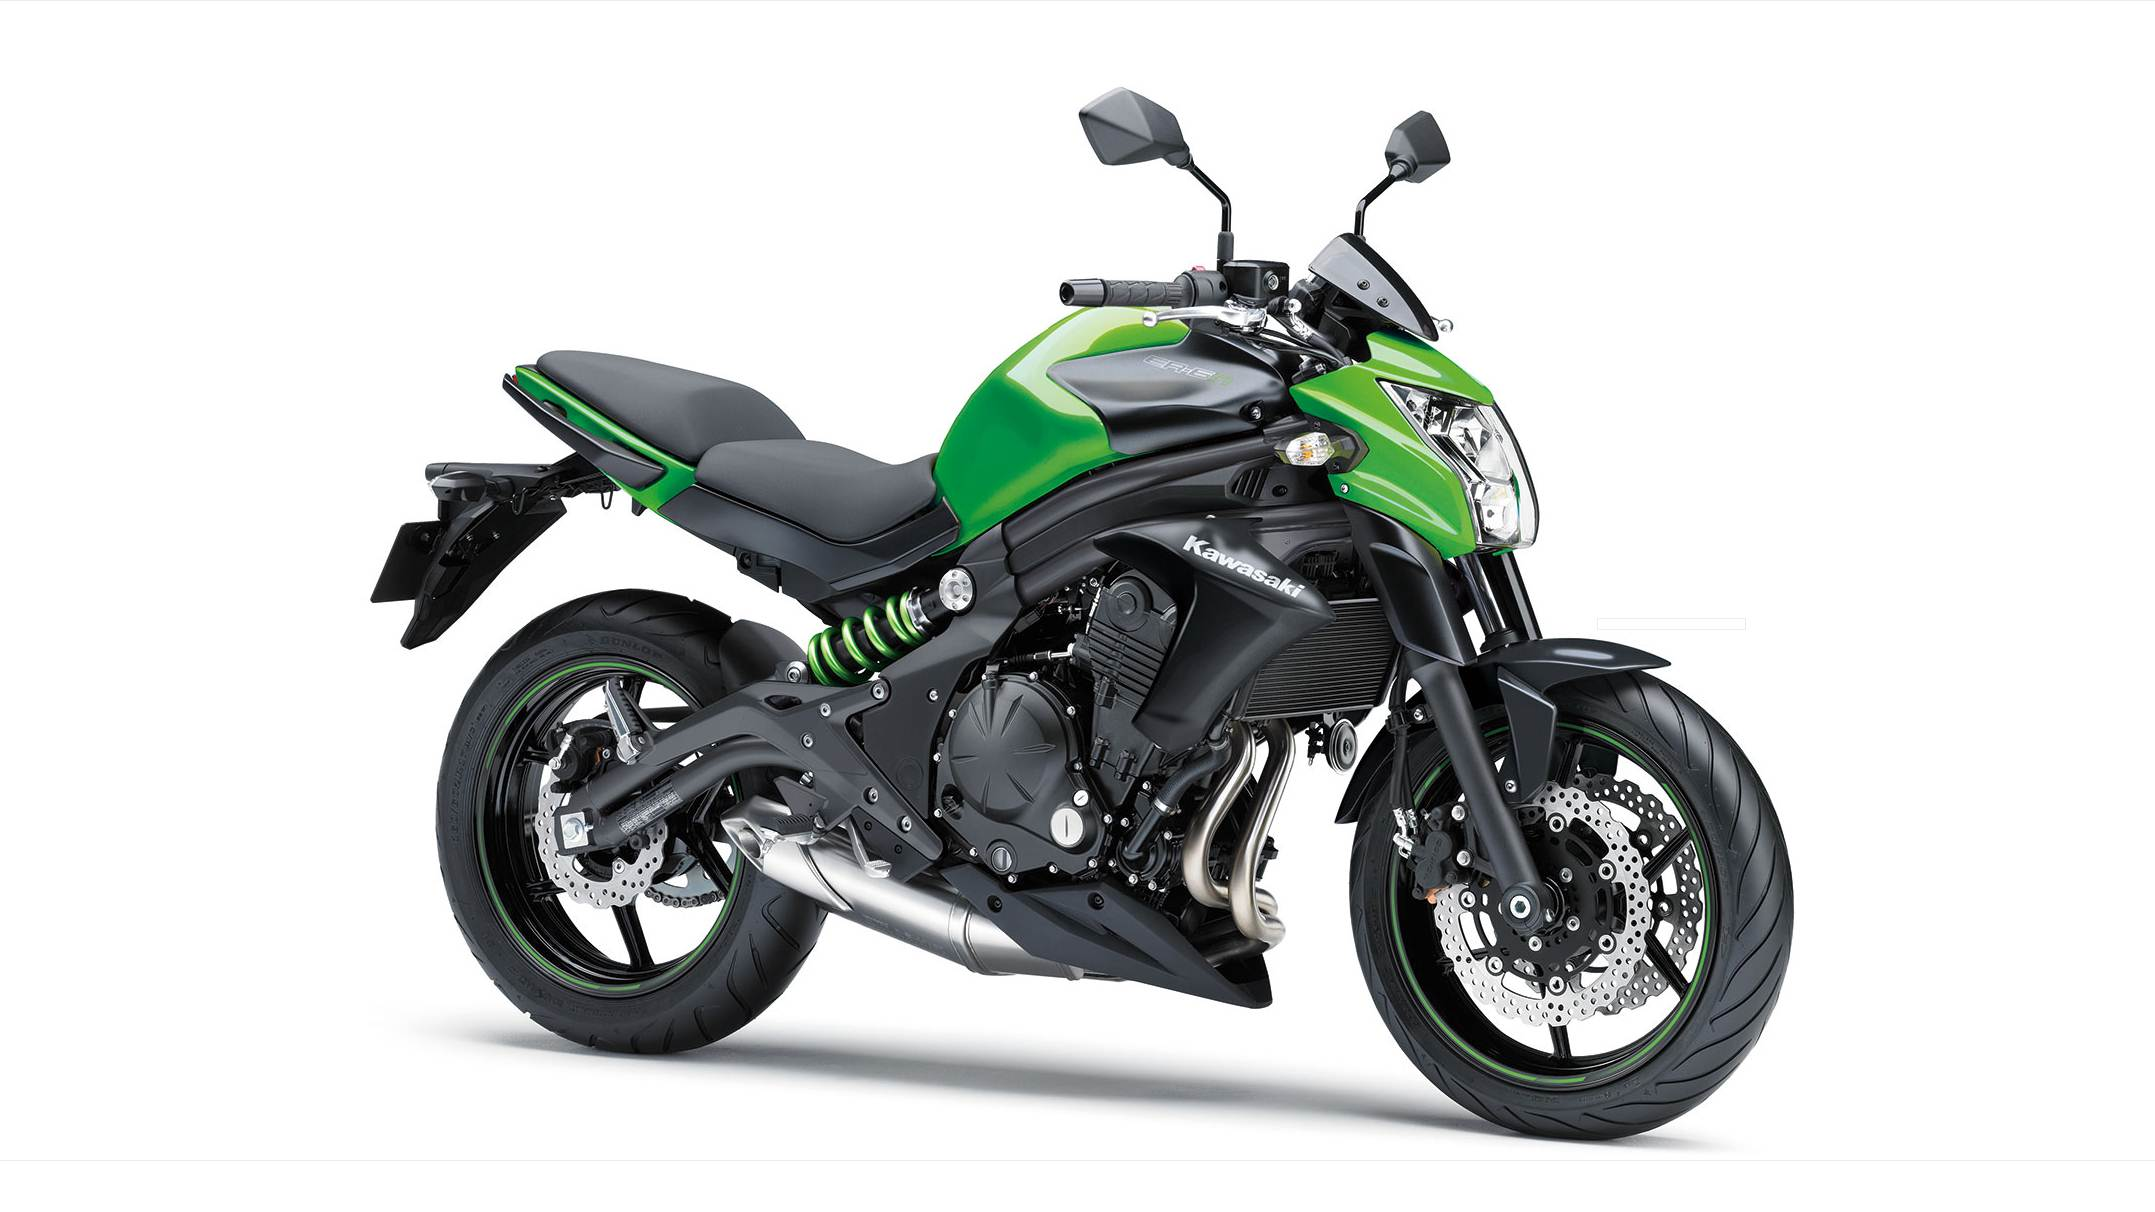 Kawasaki launches ER-6n and Z250 motorcycles in India